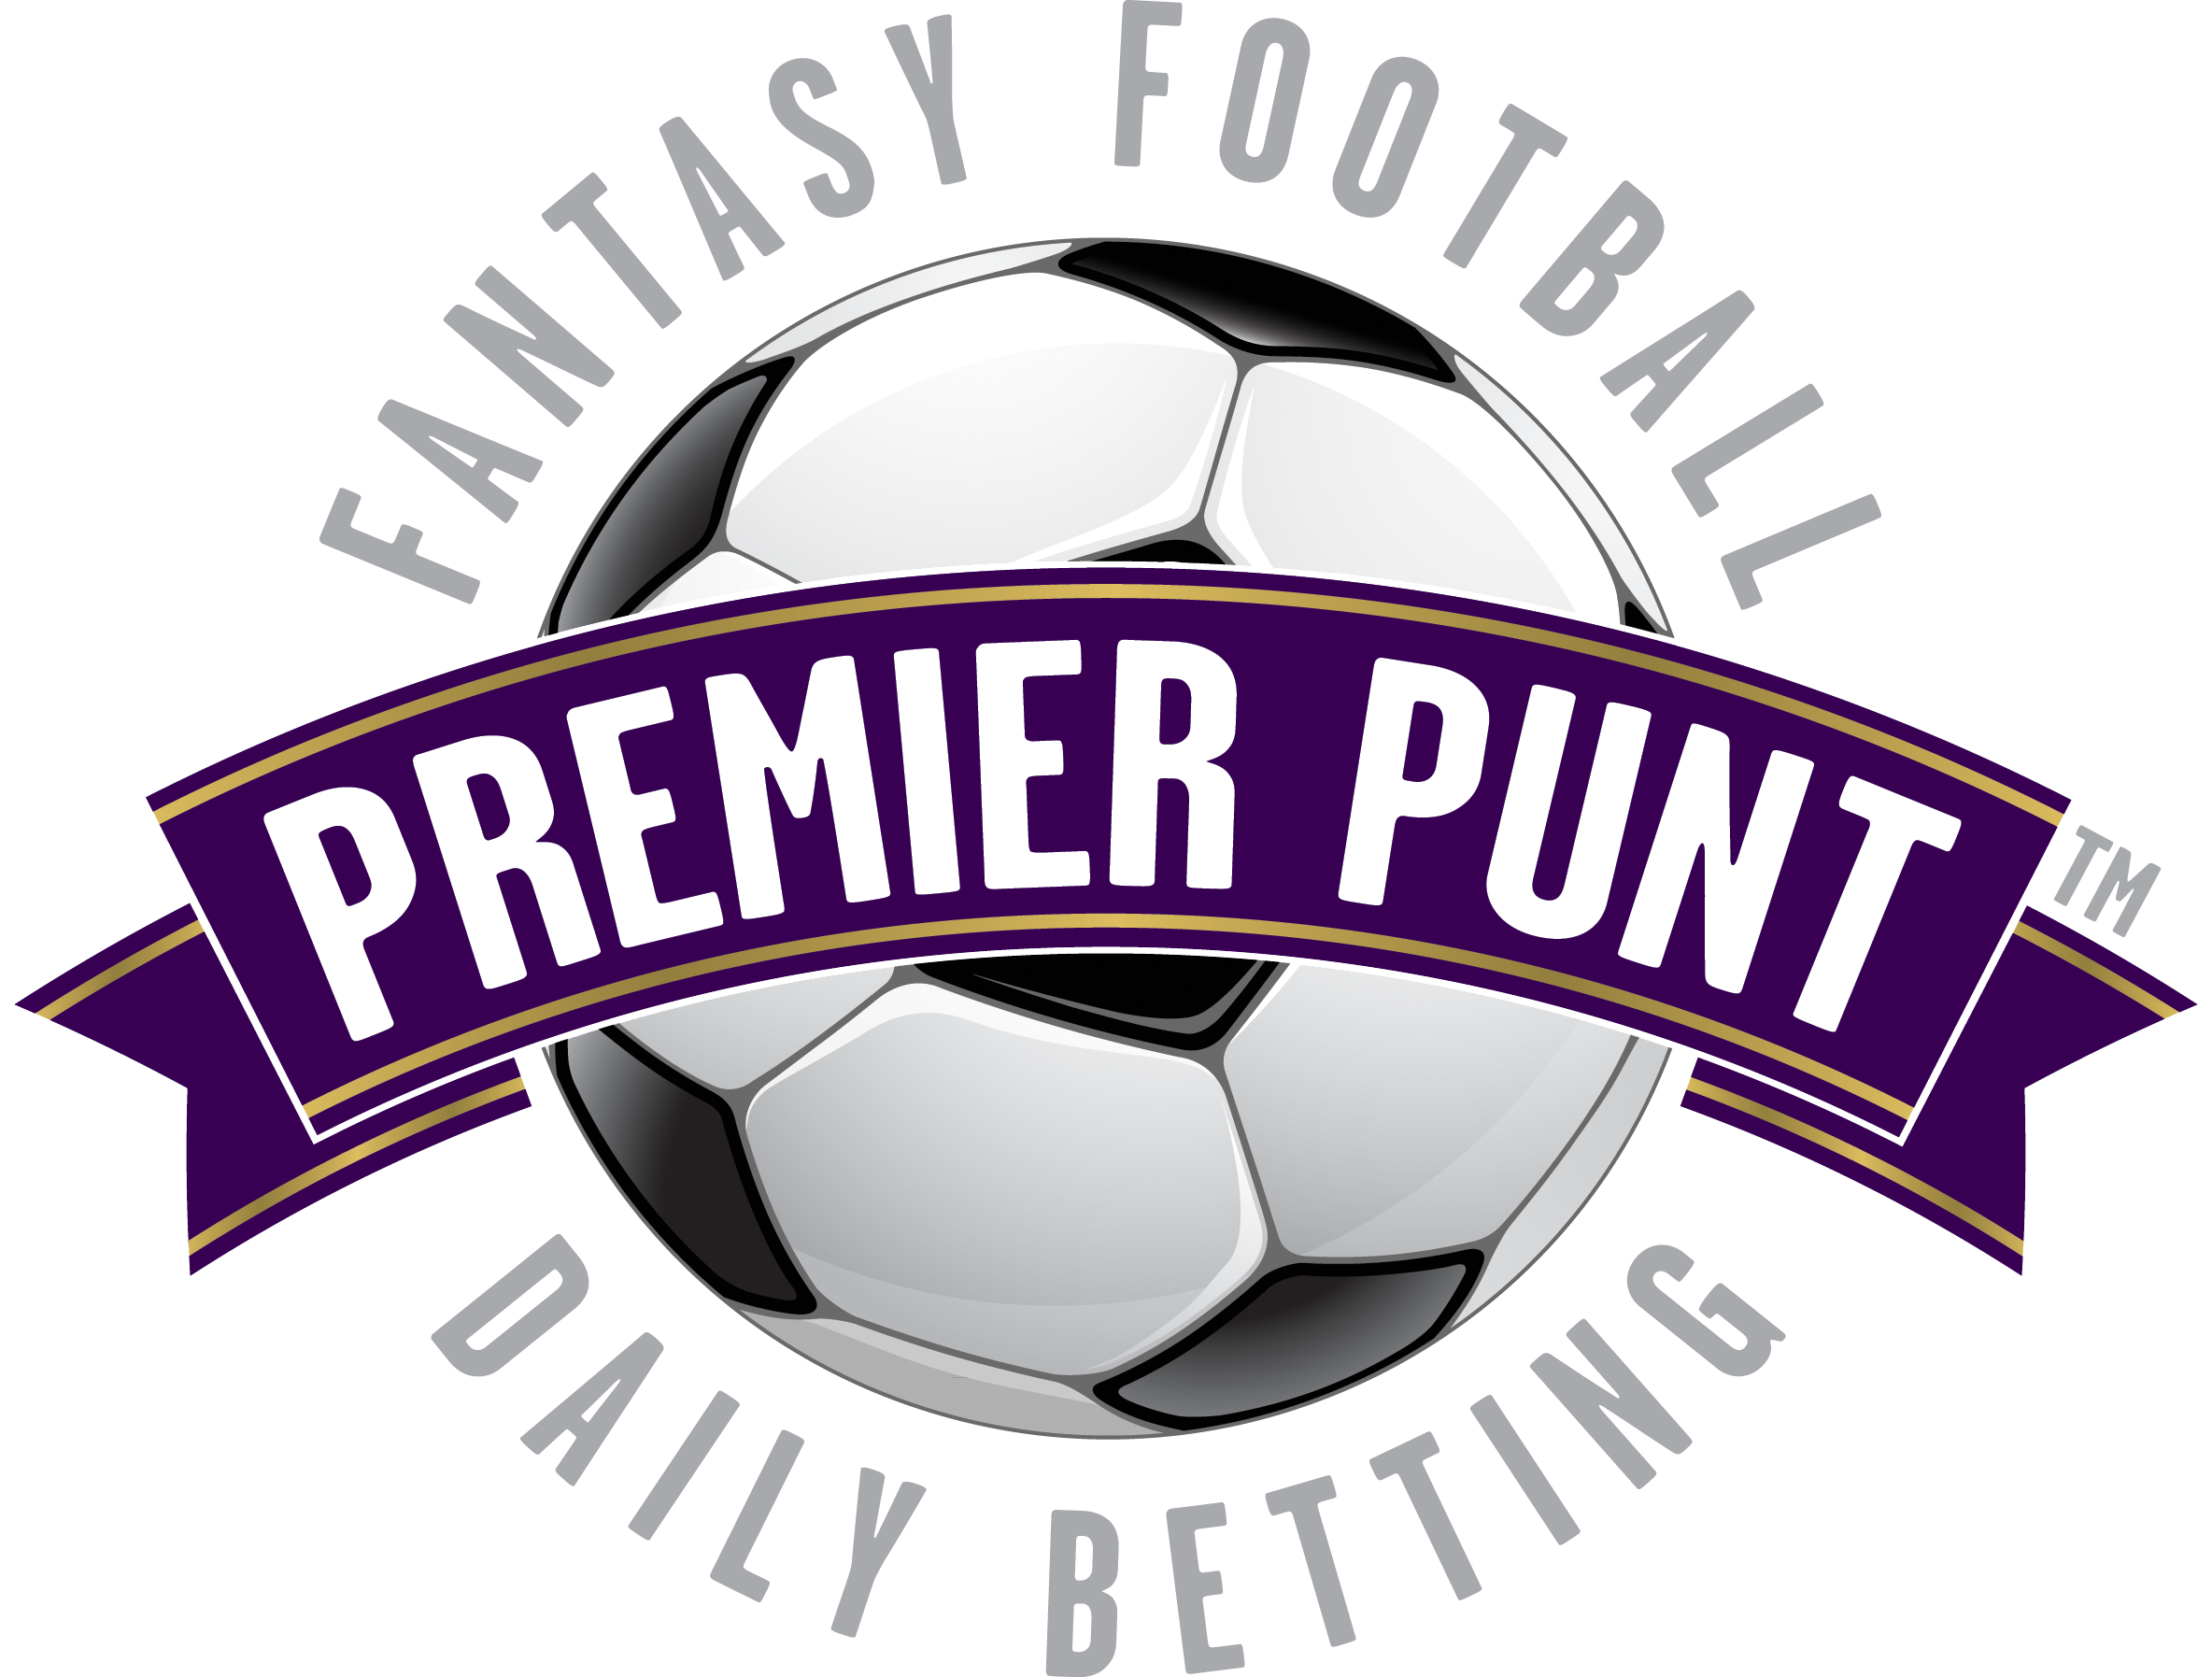 Have you picked your team on Premier Punt?